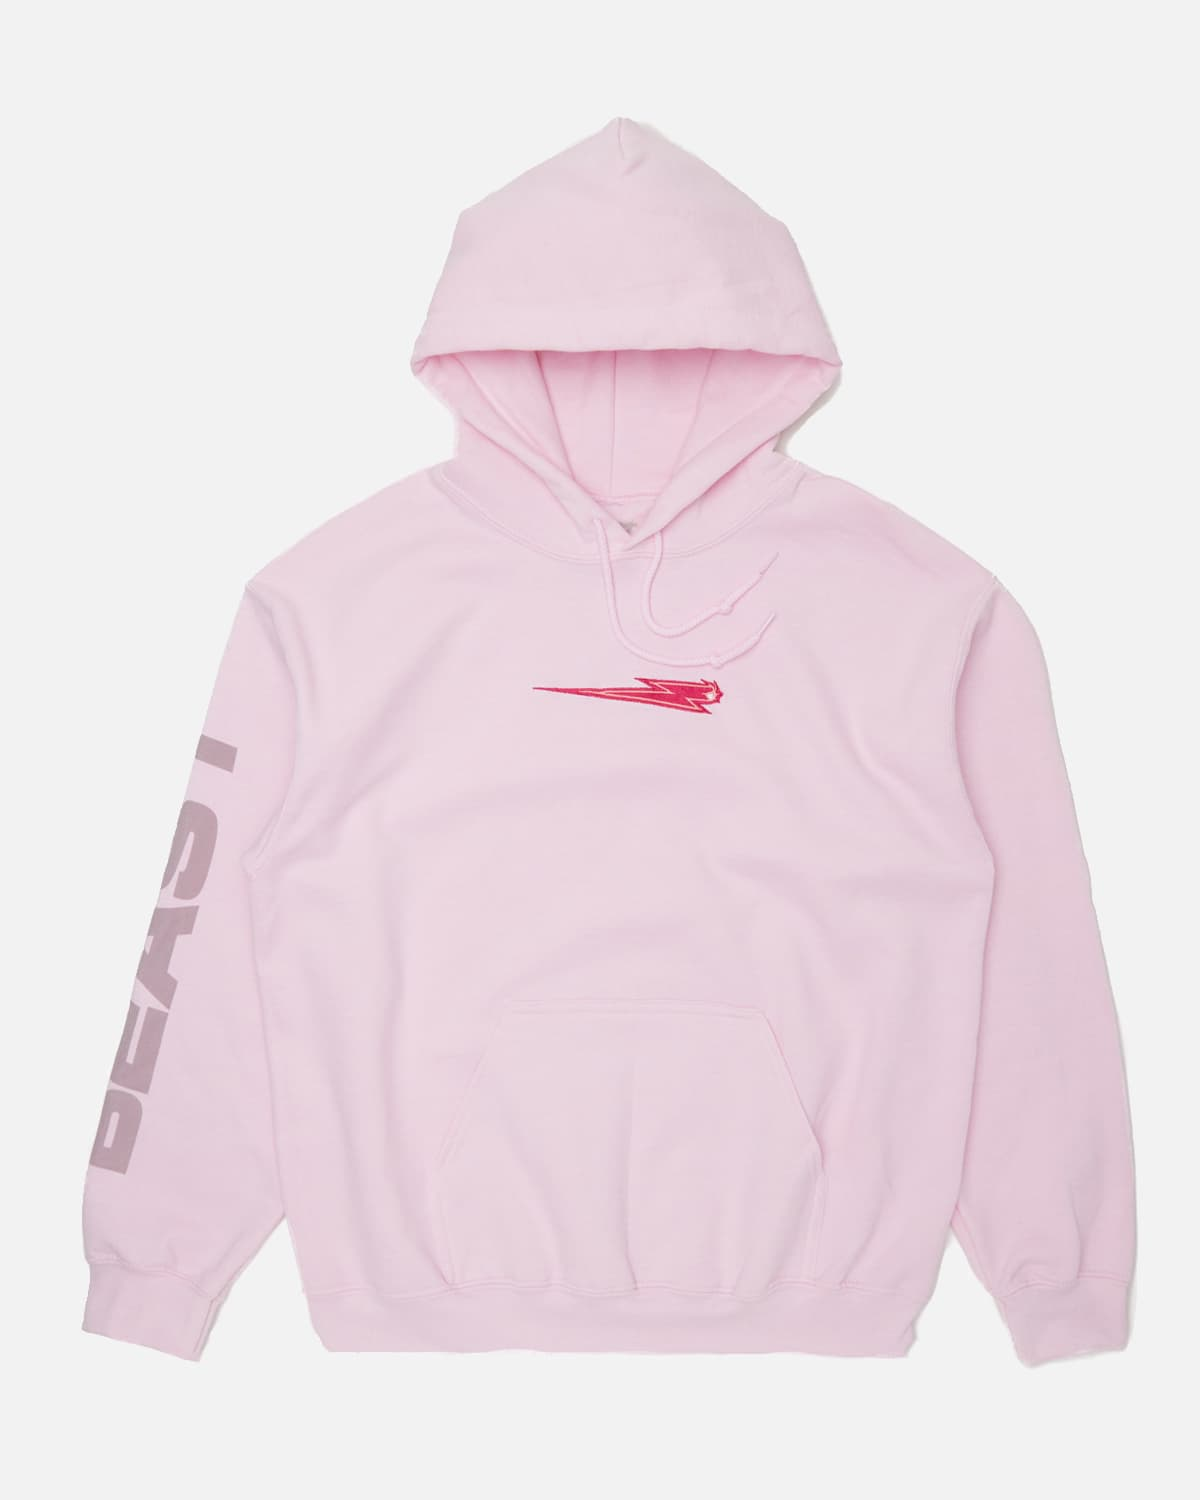 'Beast Bolt' Embroidered Pull Over Hoodie - Pink